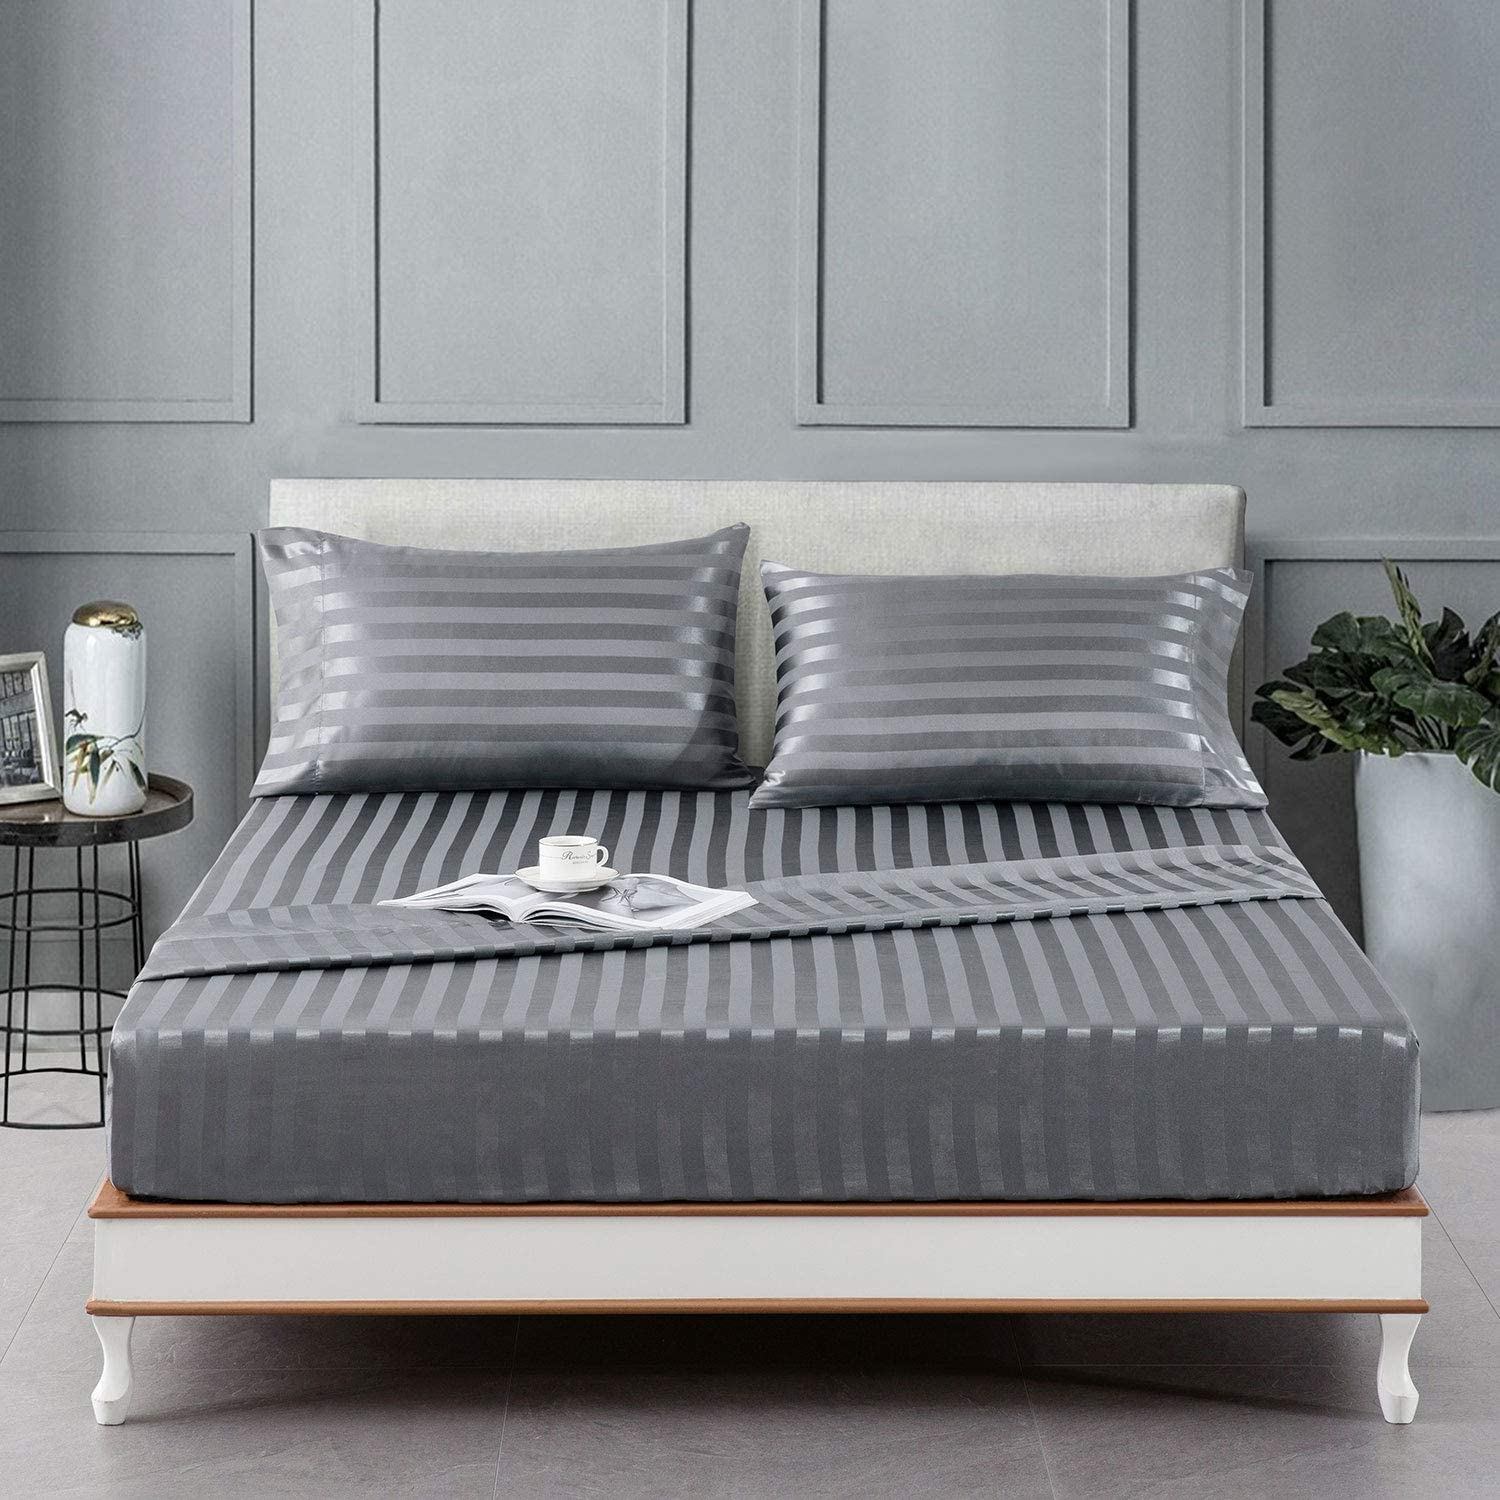 Lanest Housing Satin-Silk Sheets Twin Size Bed Set, Dark Grey Soft Cooling Deep Pocket Sheets, Hypoallergenic, Wrinkle and Fade Resistant Bedding Set, 3 Piece, Striped